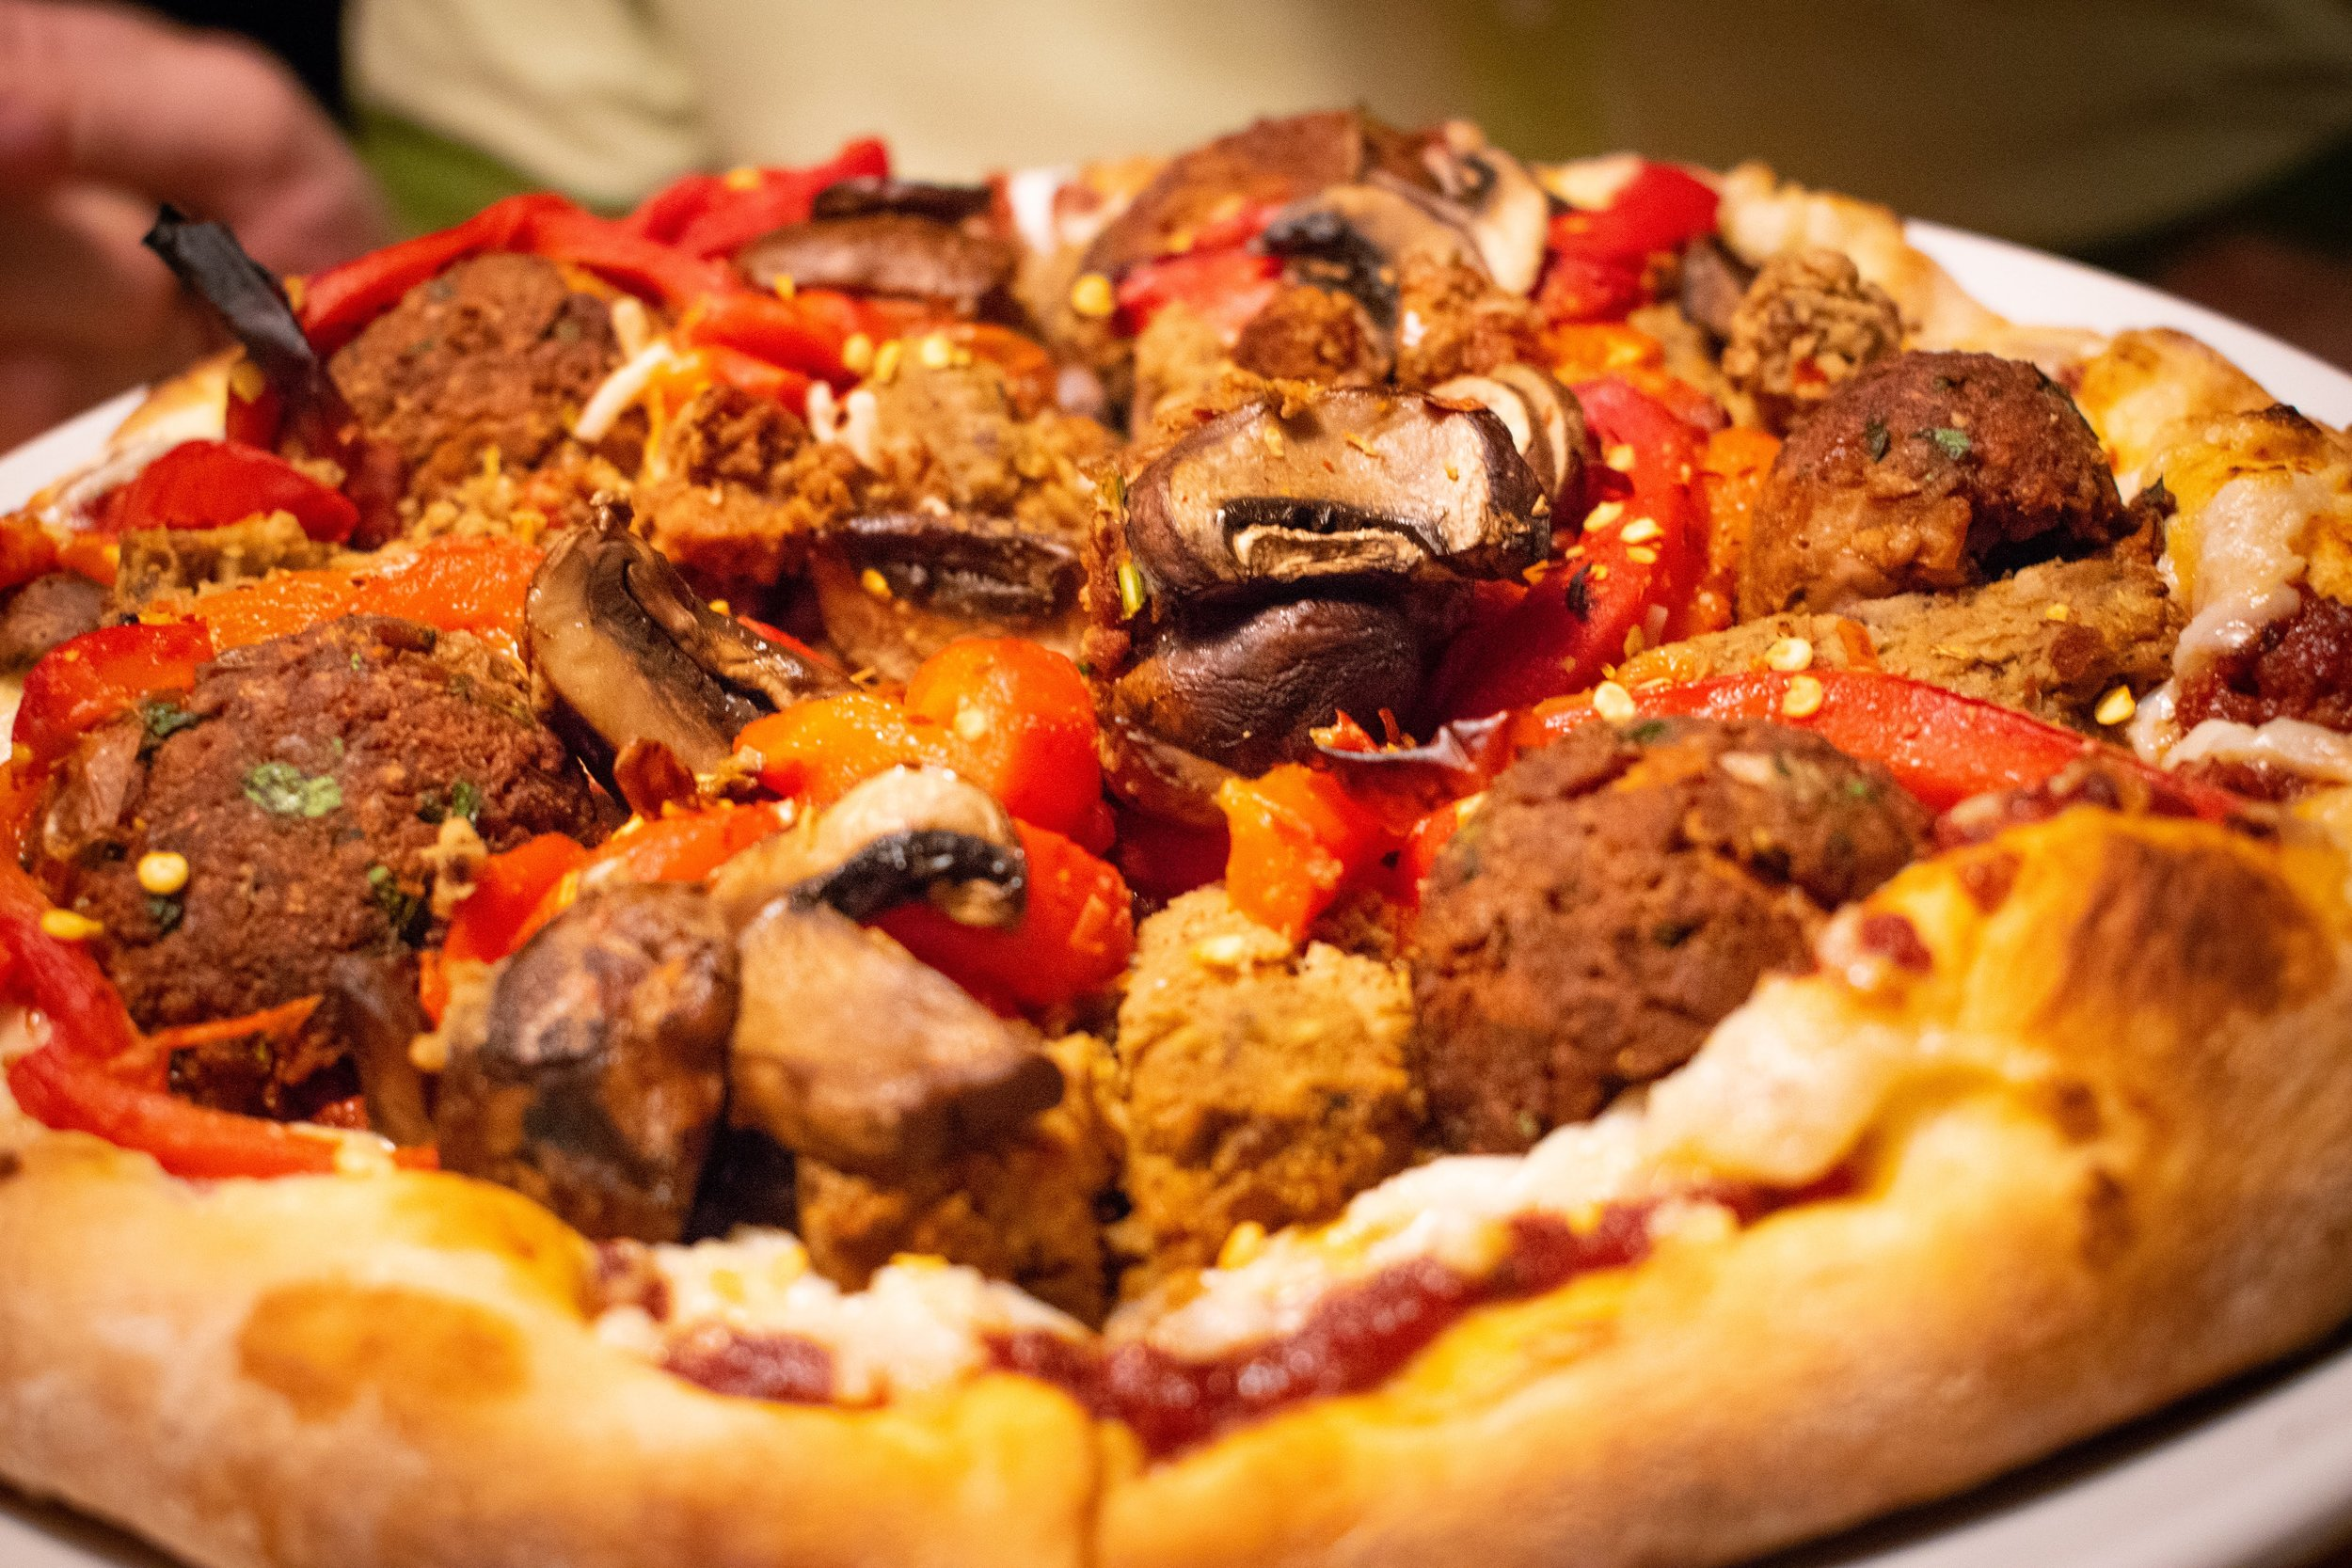 Uprooted-Traveler-Hugo's-Pizzeria-St-Louis-vegan-pizza-mushroom-cheese.jpg